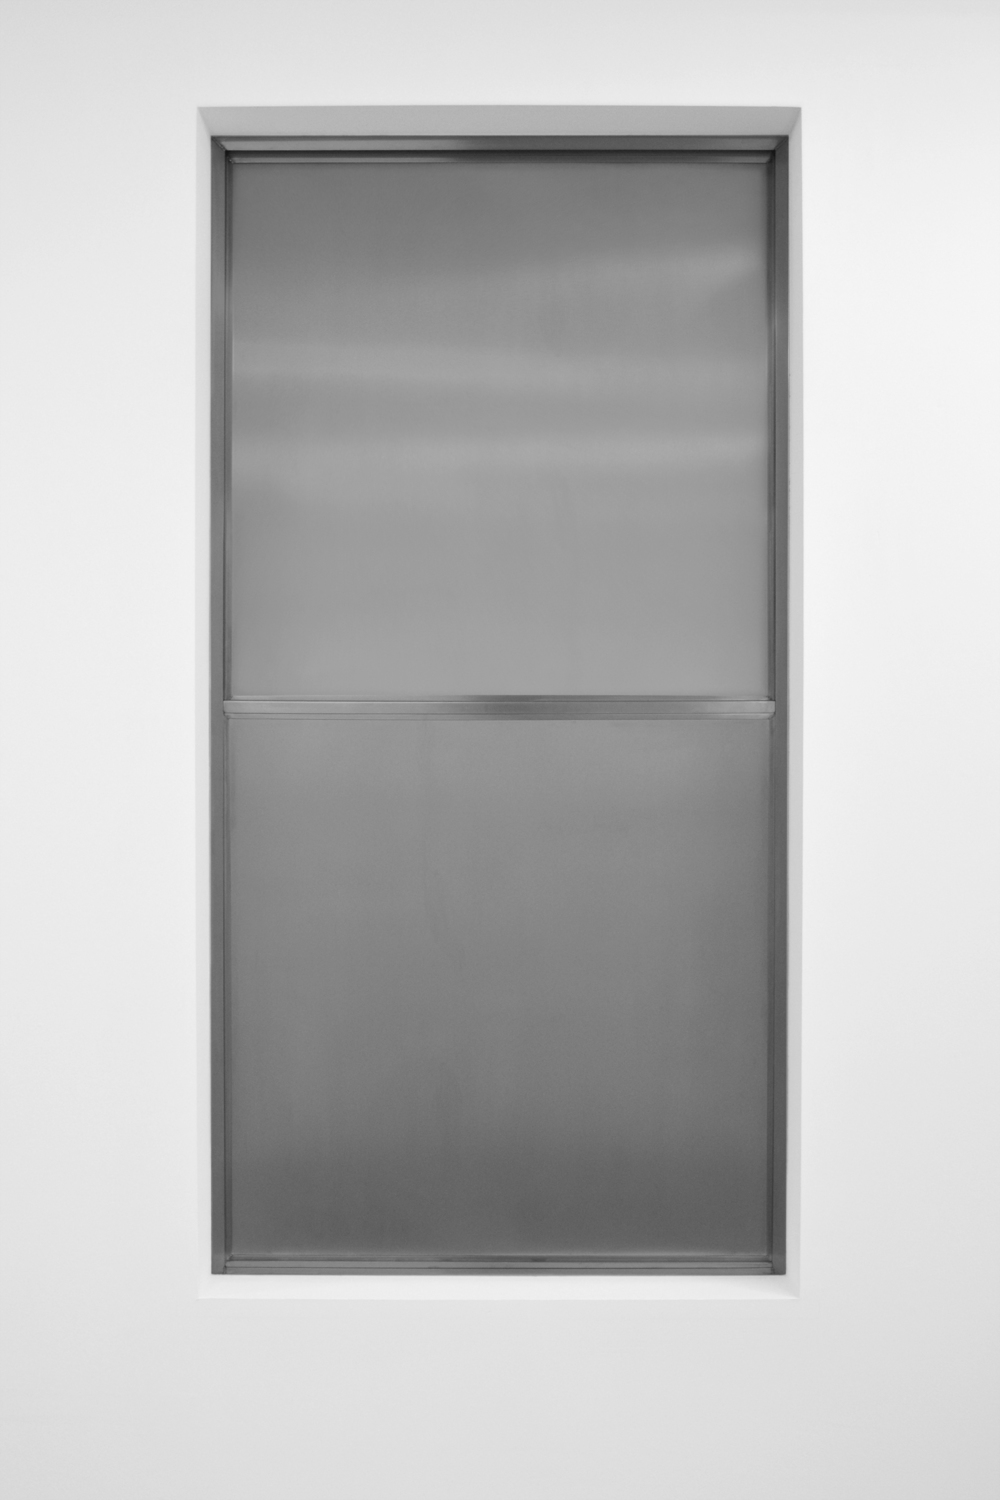 Lock Up Your Concepts   2011 Stainless steel 73 x 37 x 2 in / 186 x 94 x 5 cm